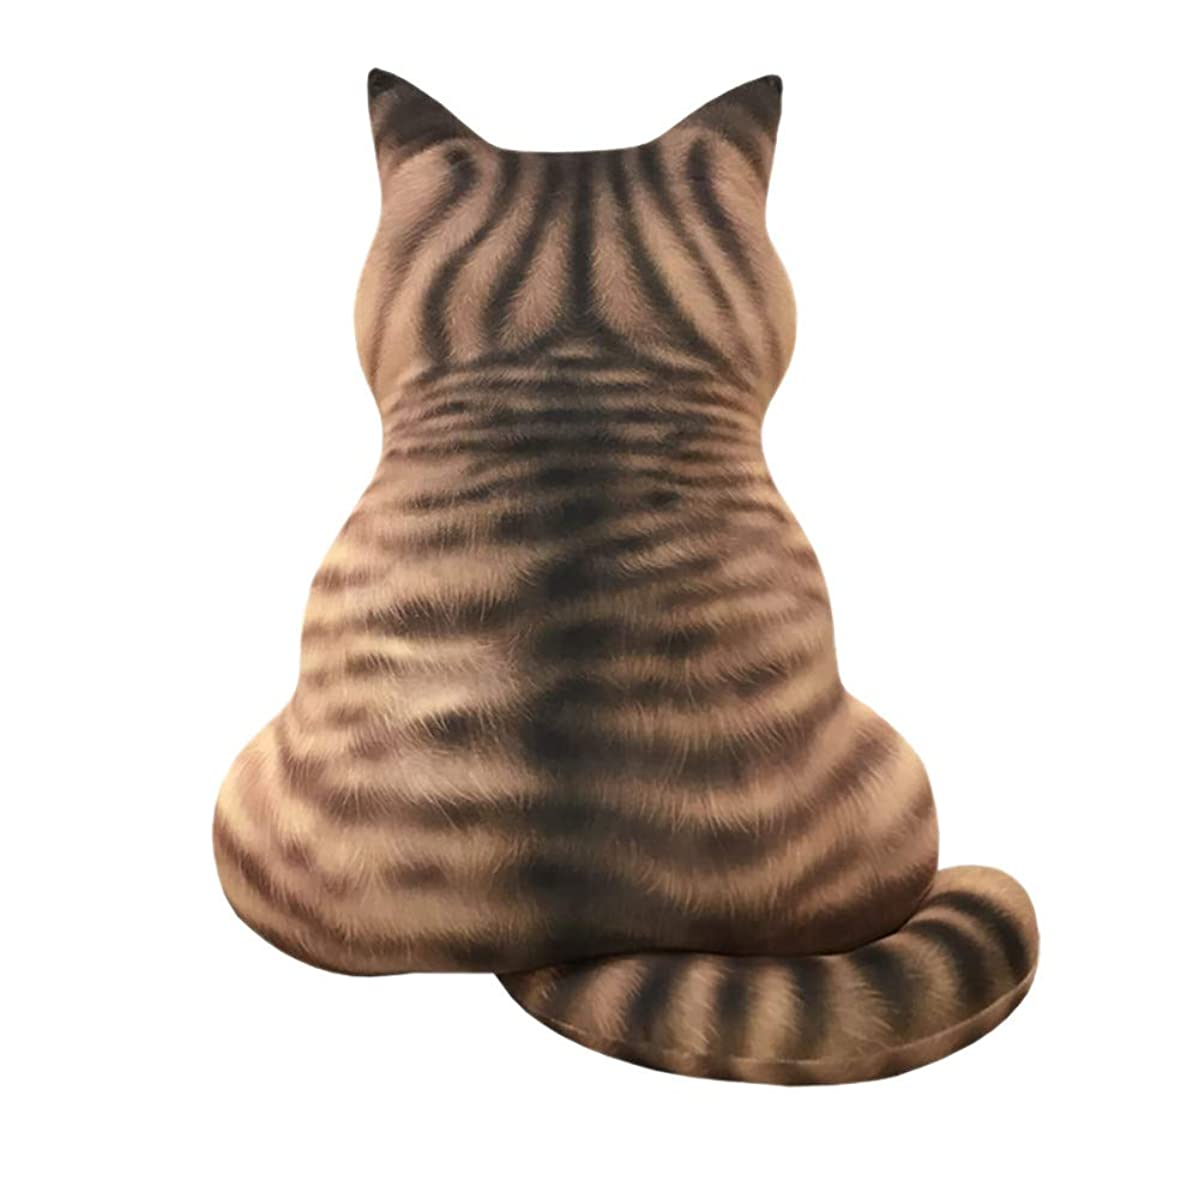 ?? Pillow Clearance, 3D Printed Cat Cushion Plush Toy Gift Simulation Cat Pillows Home Sofa Decor (F)